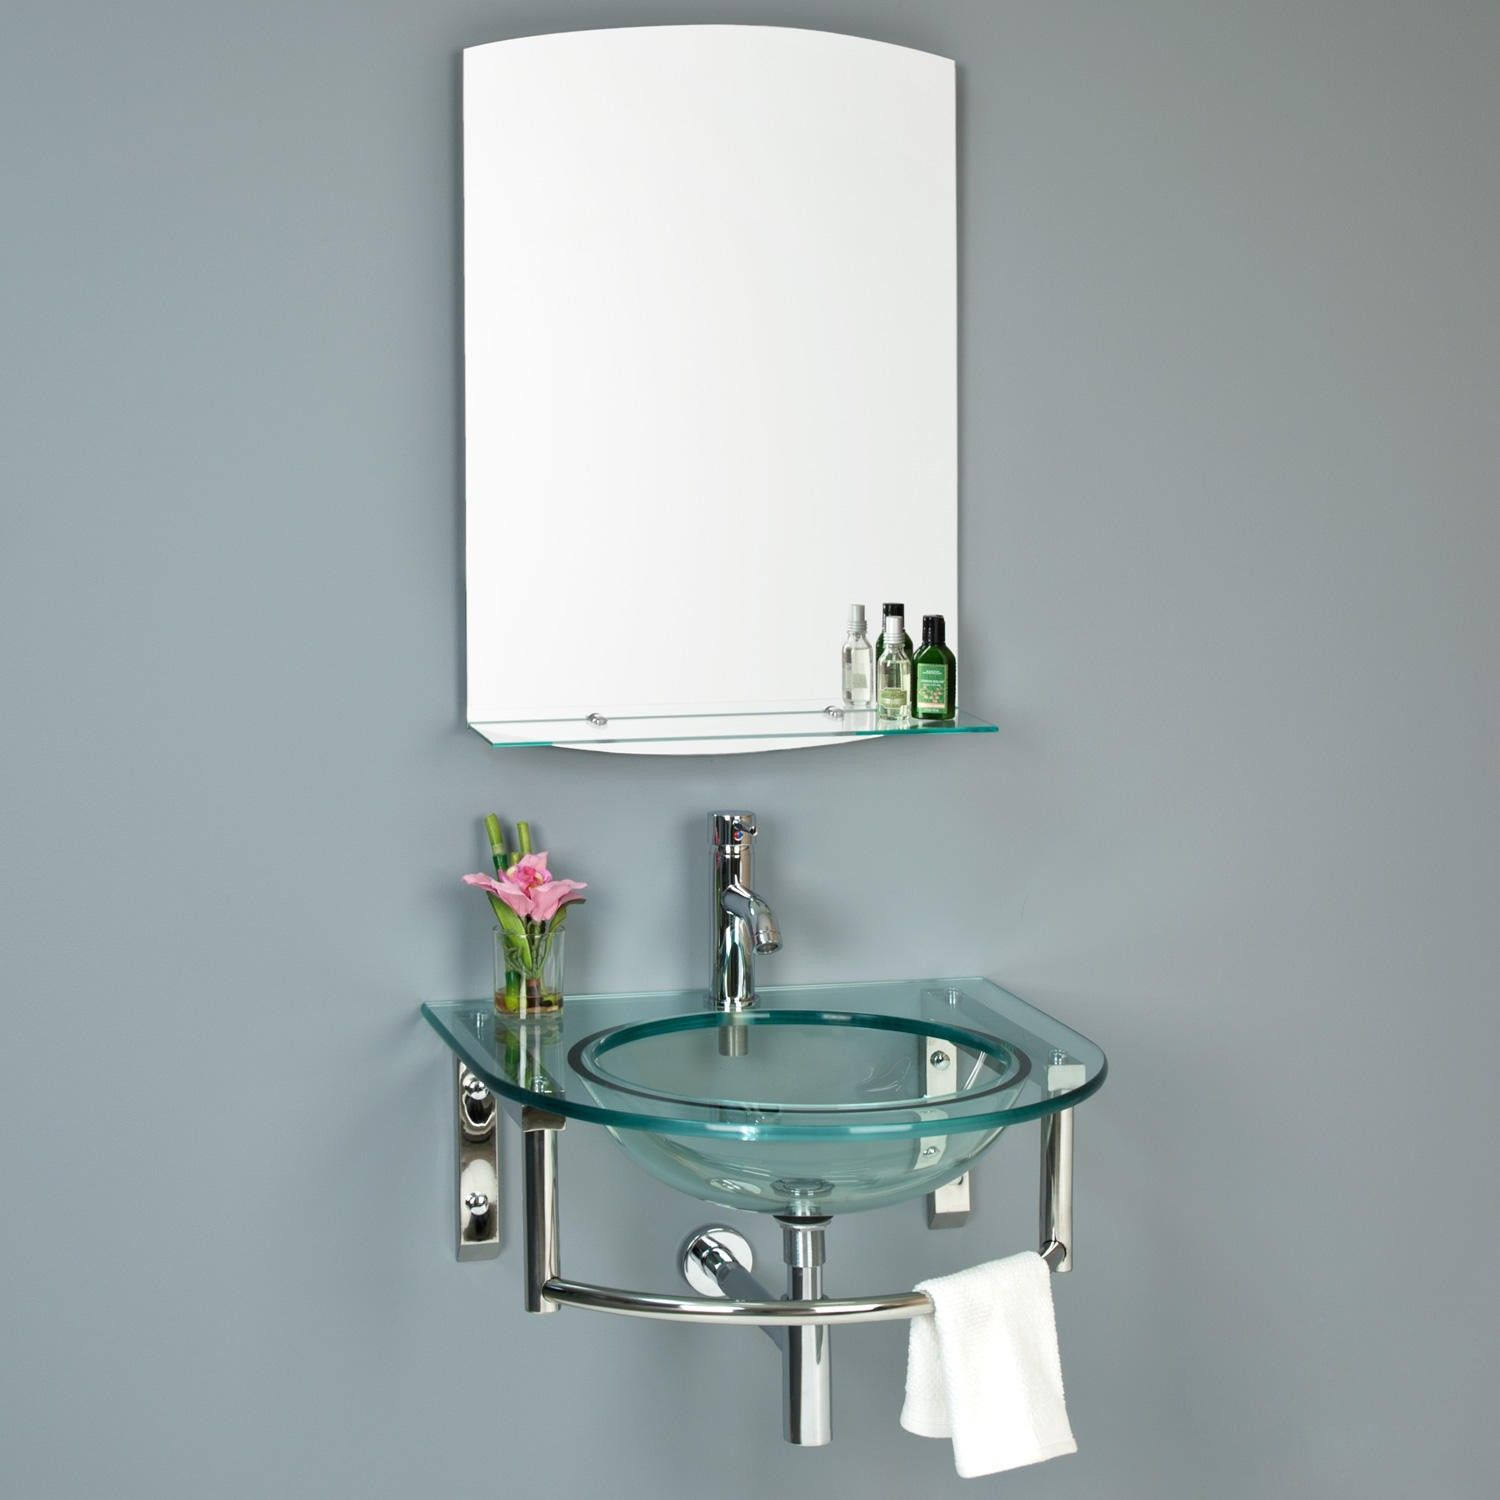 Lowry Wall Mount Glass Sink with Mirror and Shelf Wall Mount